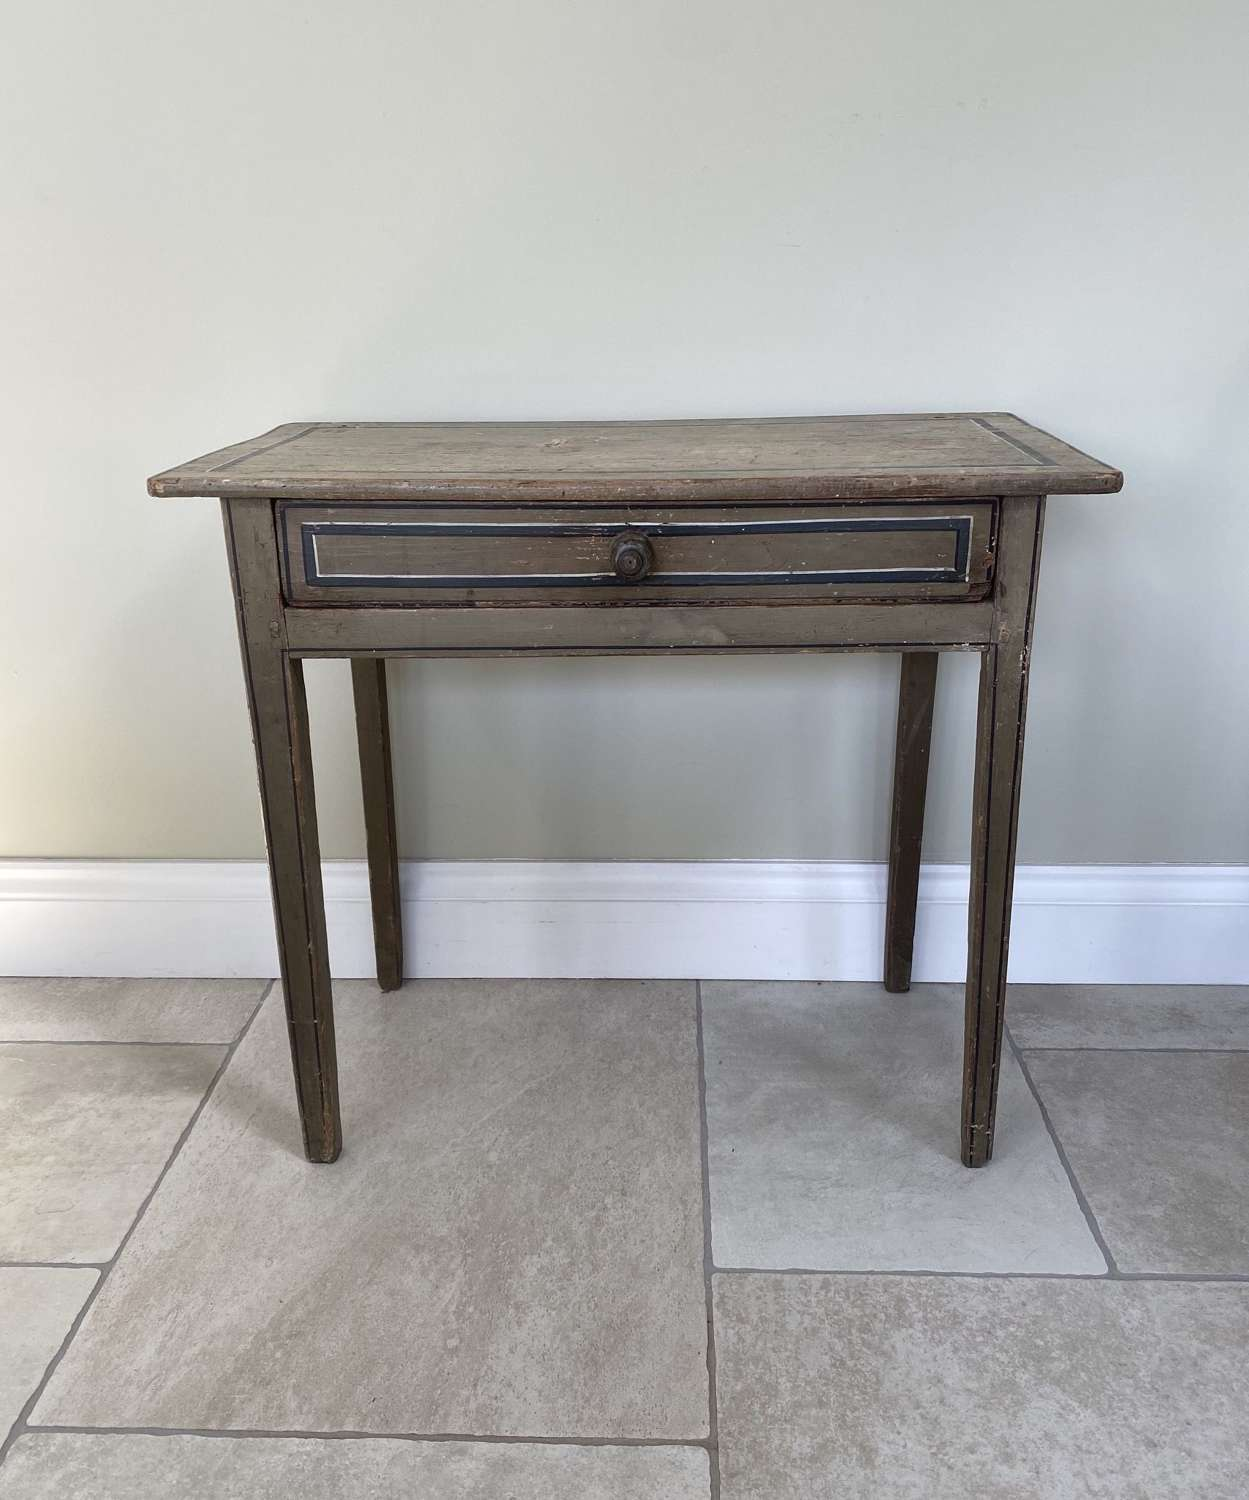 Victorian Pine Table with Single Drawer in Fantastic Original Paint